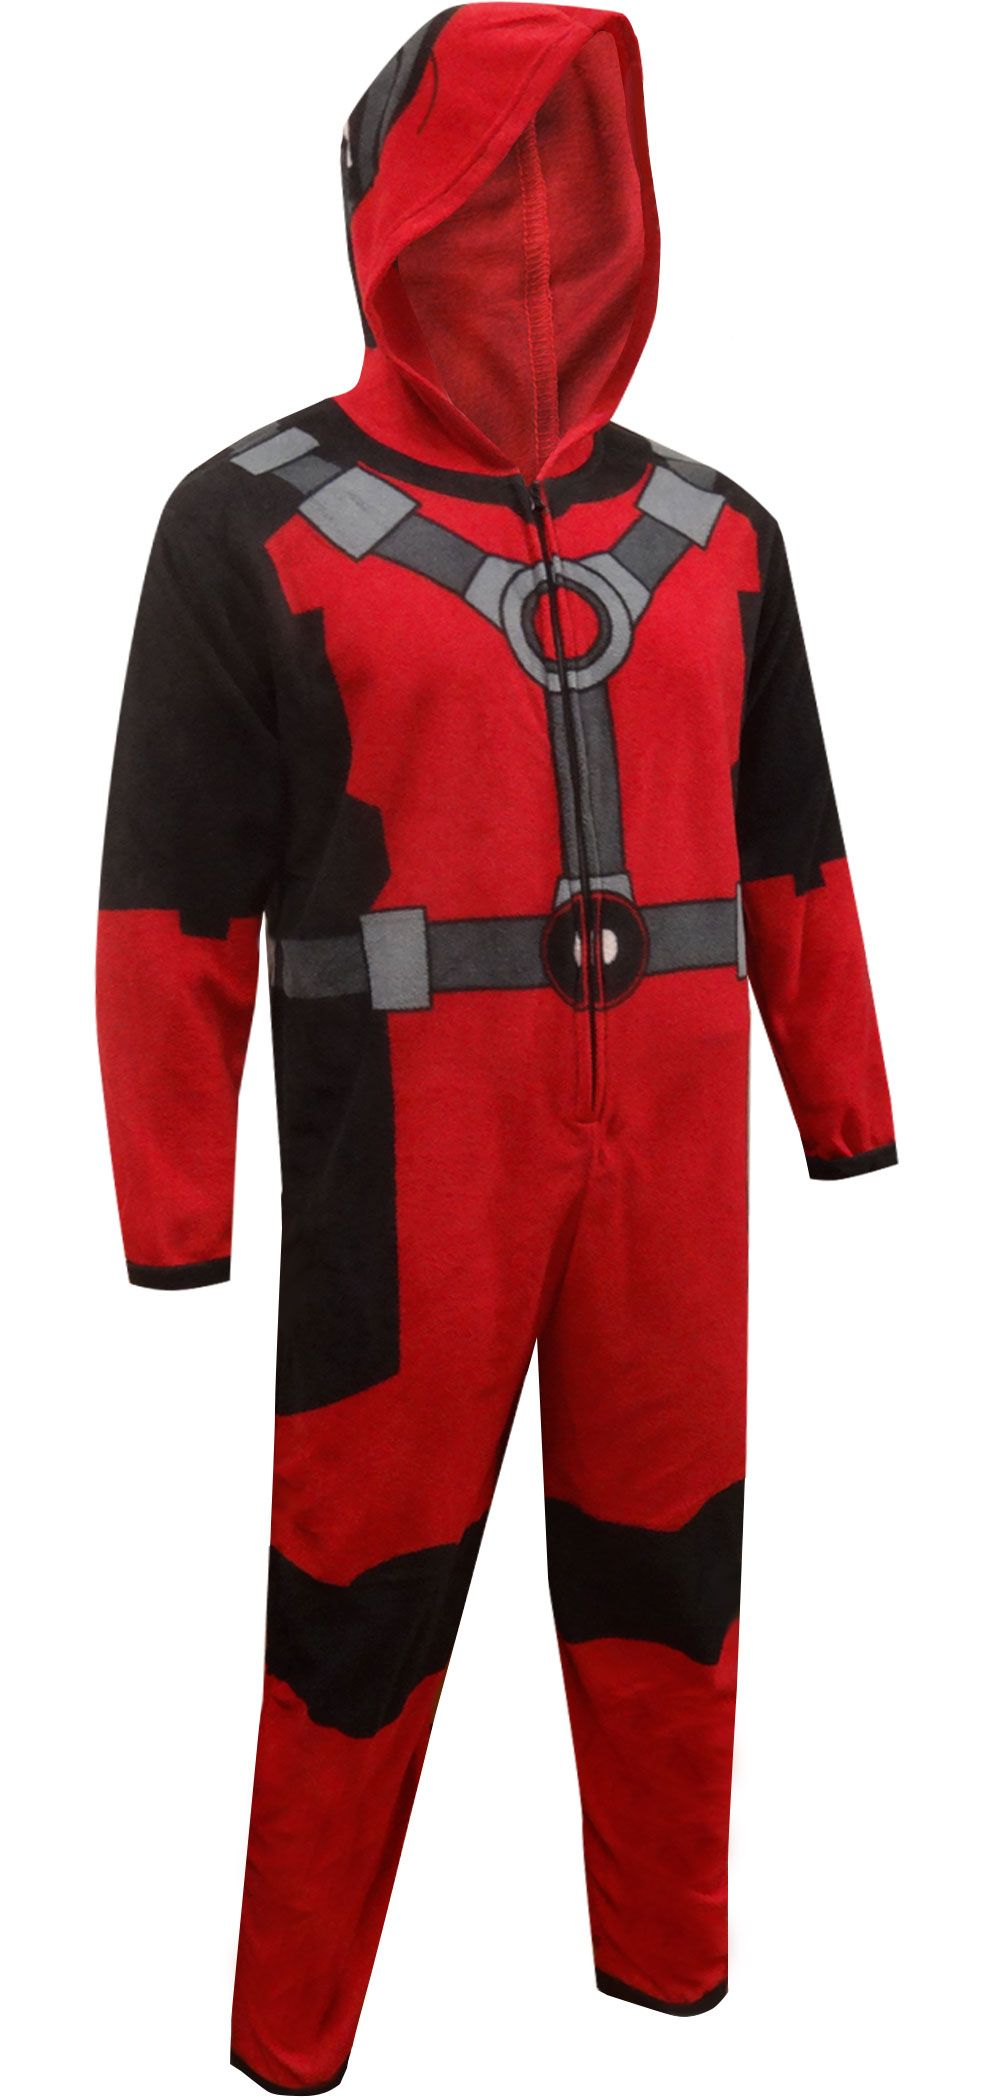 Marvel Comics Deadpool Hooded Fleece Onesie Pajama  f48089642